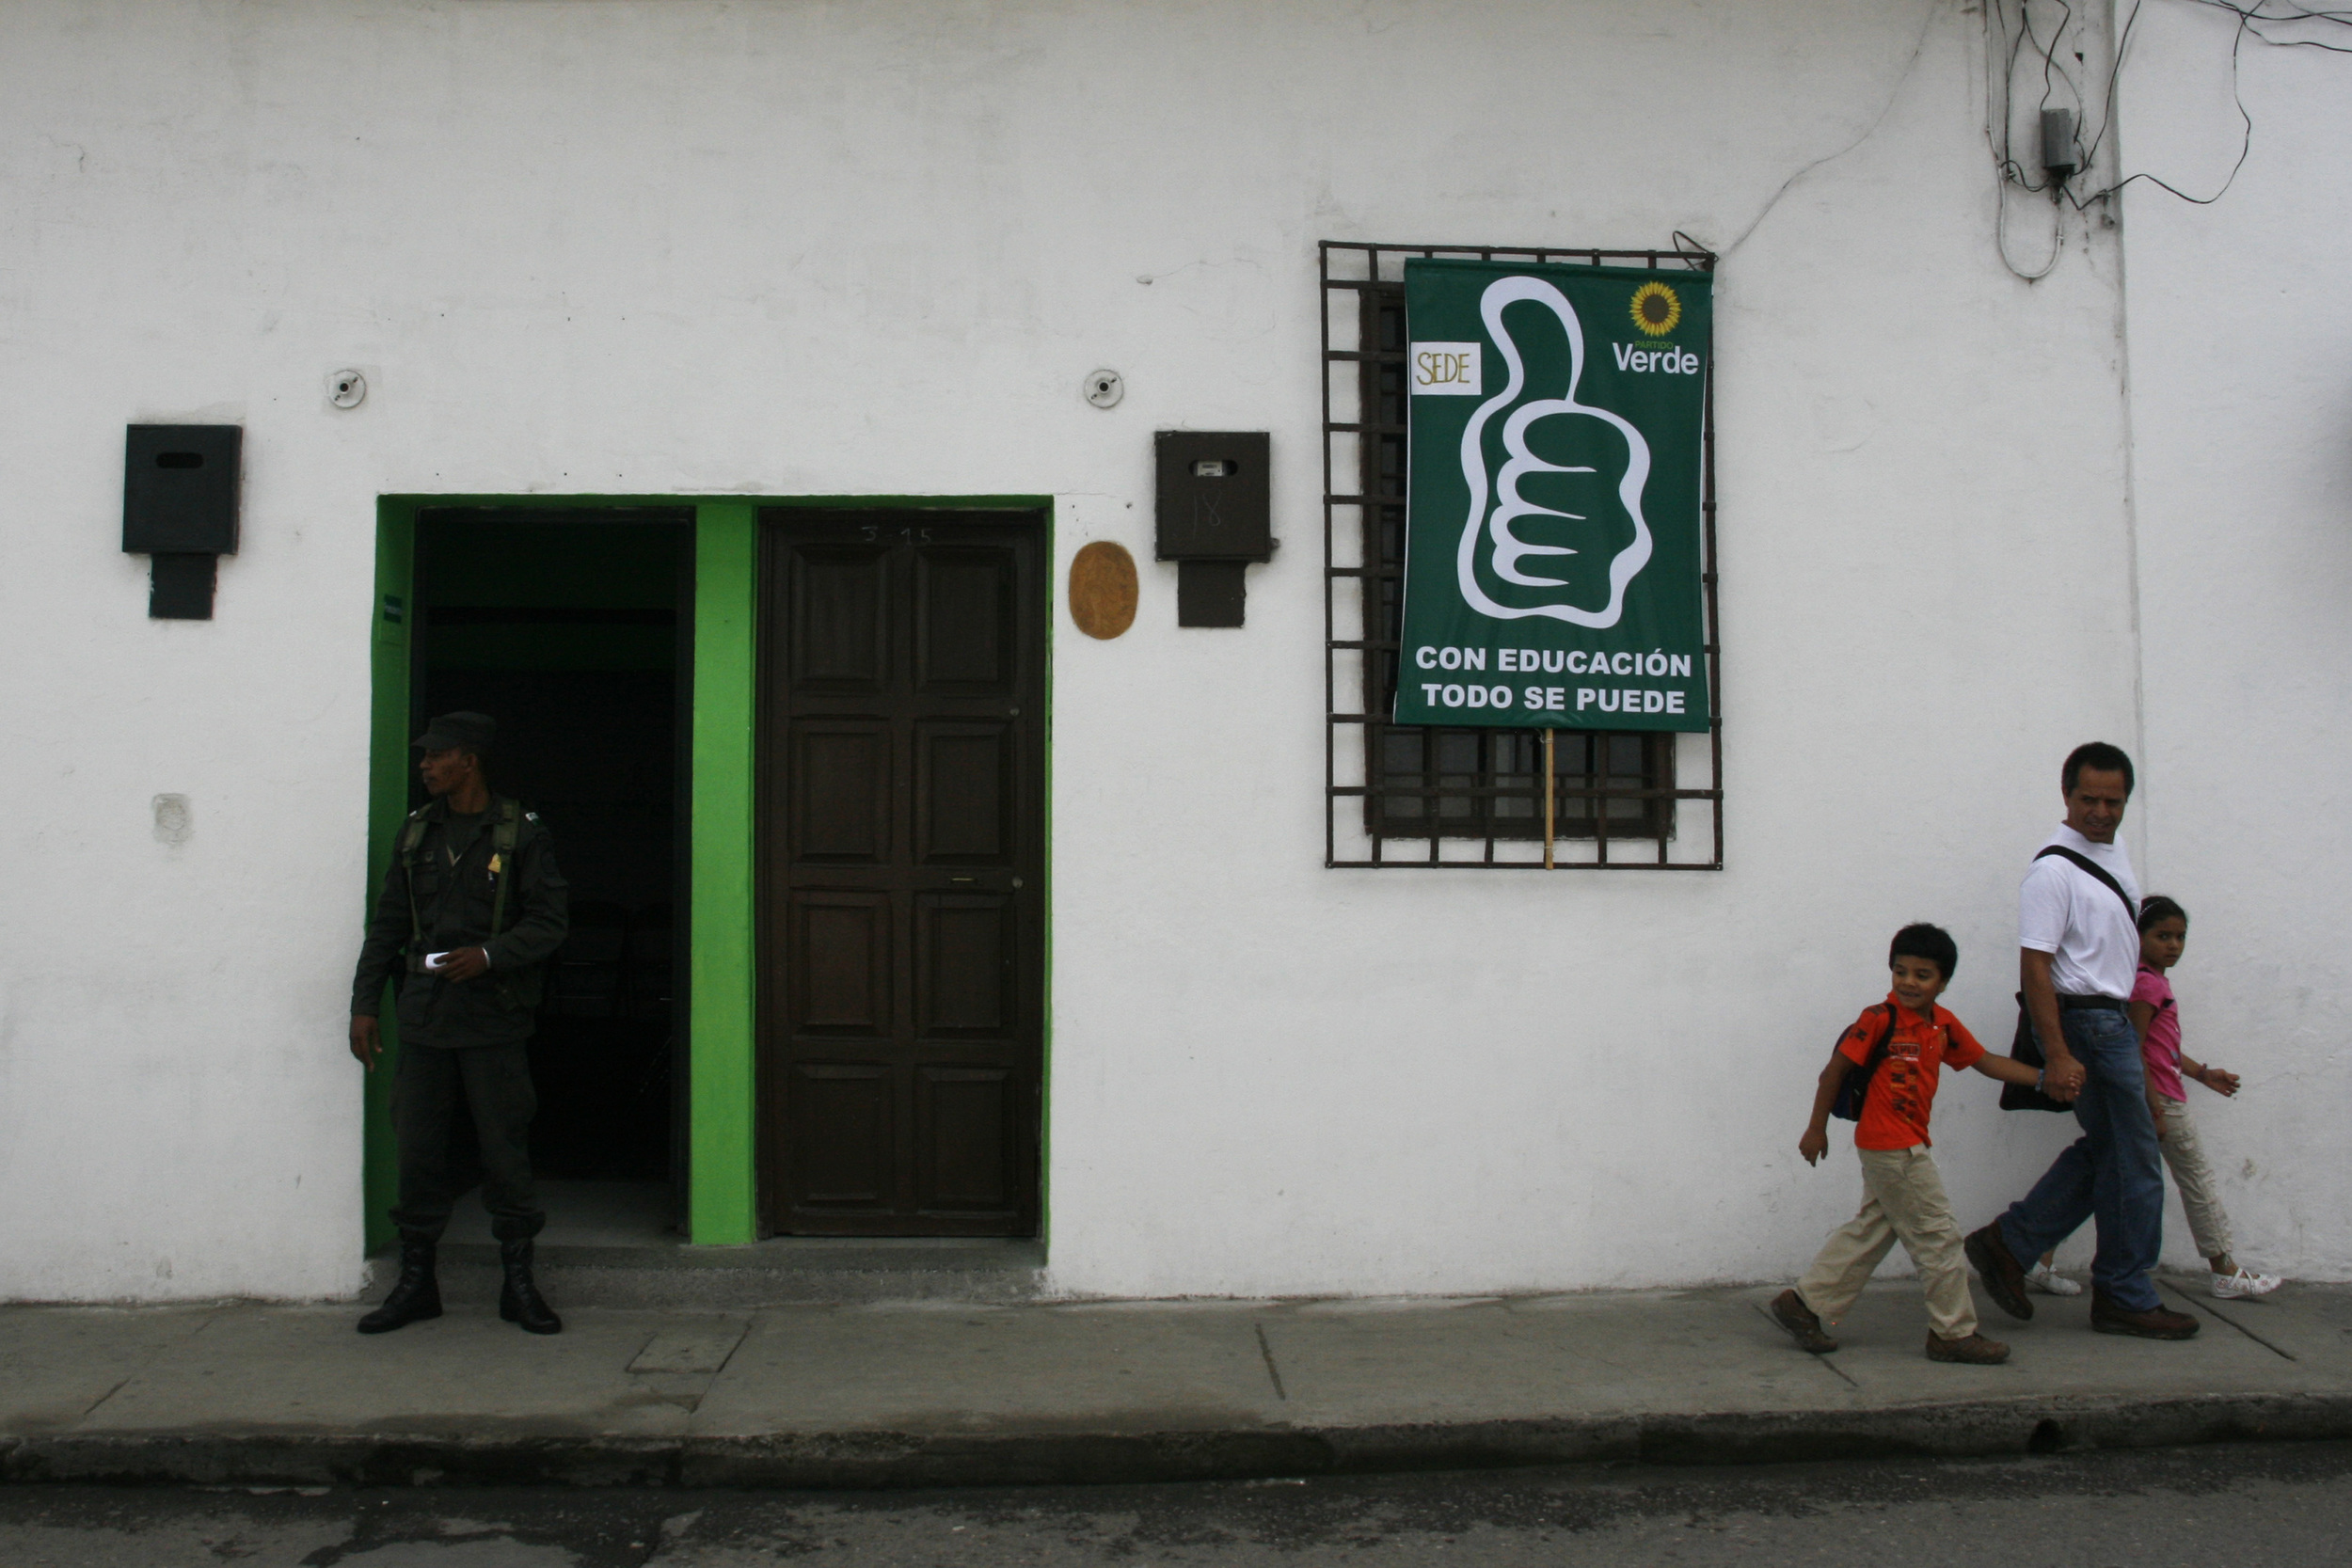 A guard stands outside the campaign office of the Green Party in  Popayan, Colombia.